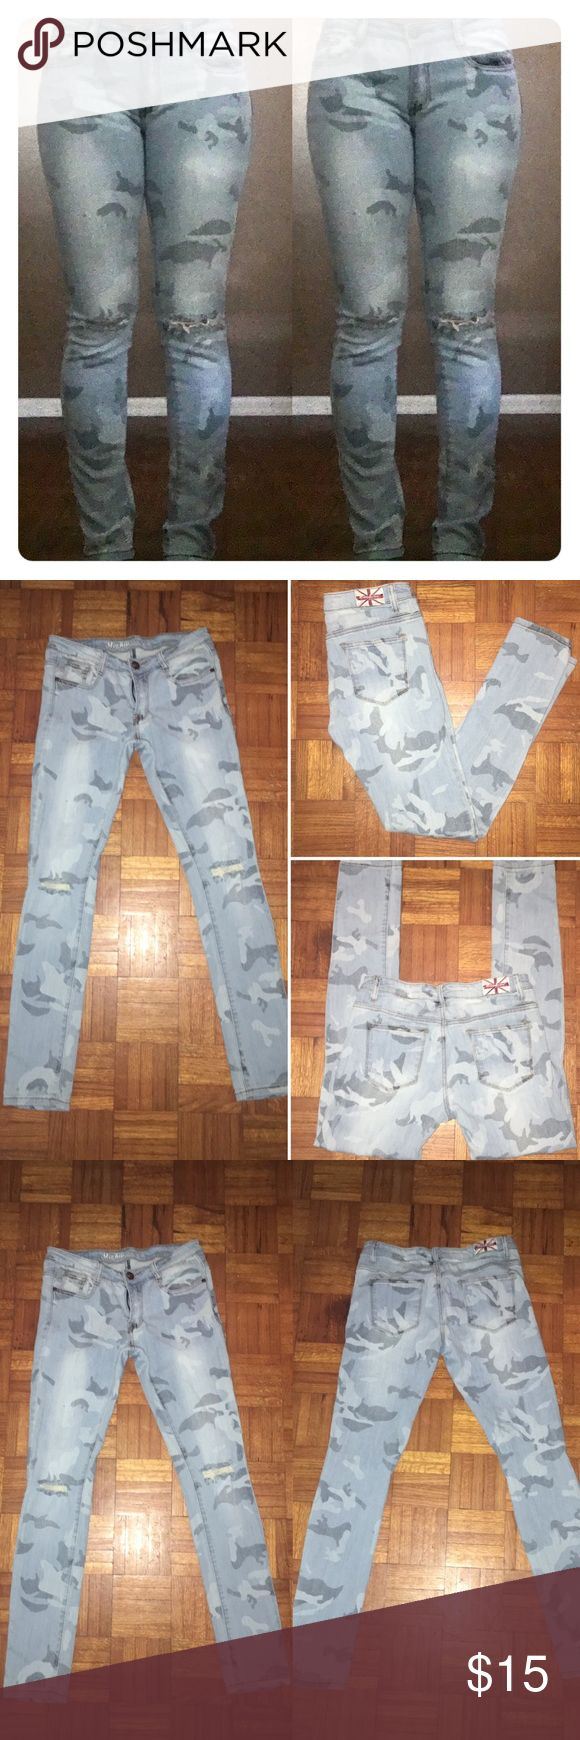 Low Rise Faded Camo Skinny Jeans Low Rise Faded Camo Print Skinny Jeans. Cut at the knees. Size 7-9 (29) MACHINE nouvelle mode  Jeans Skinny